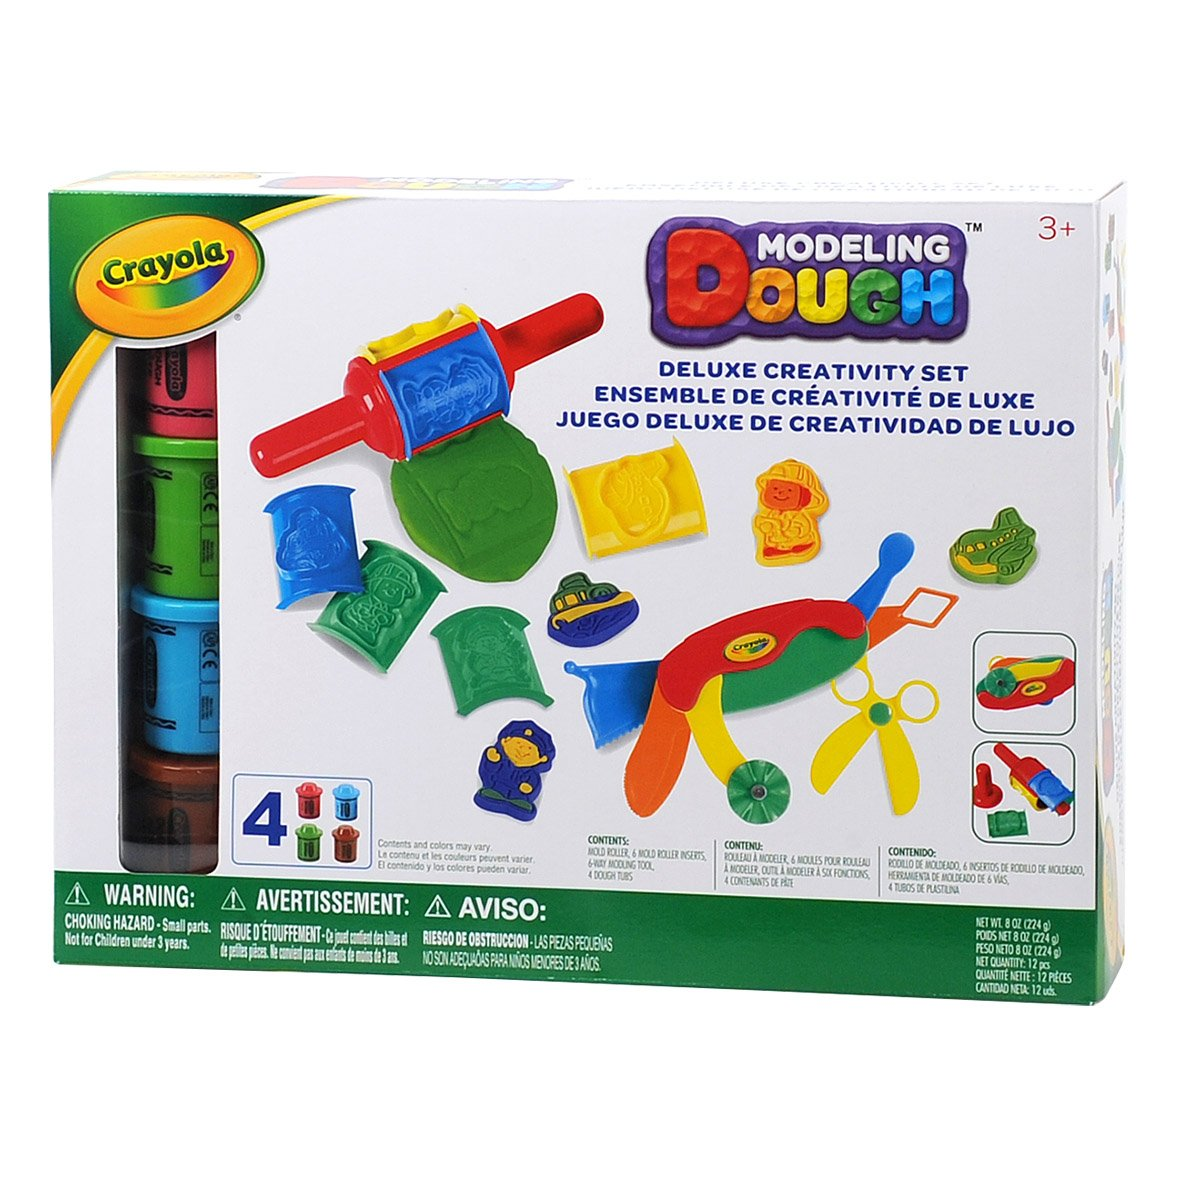 Crayola Modeling Dough Deluxe Creativity Set 12 pieces